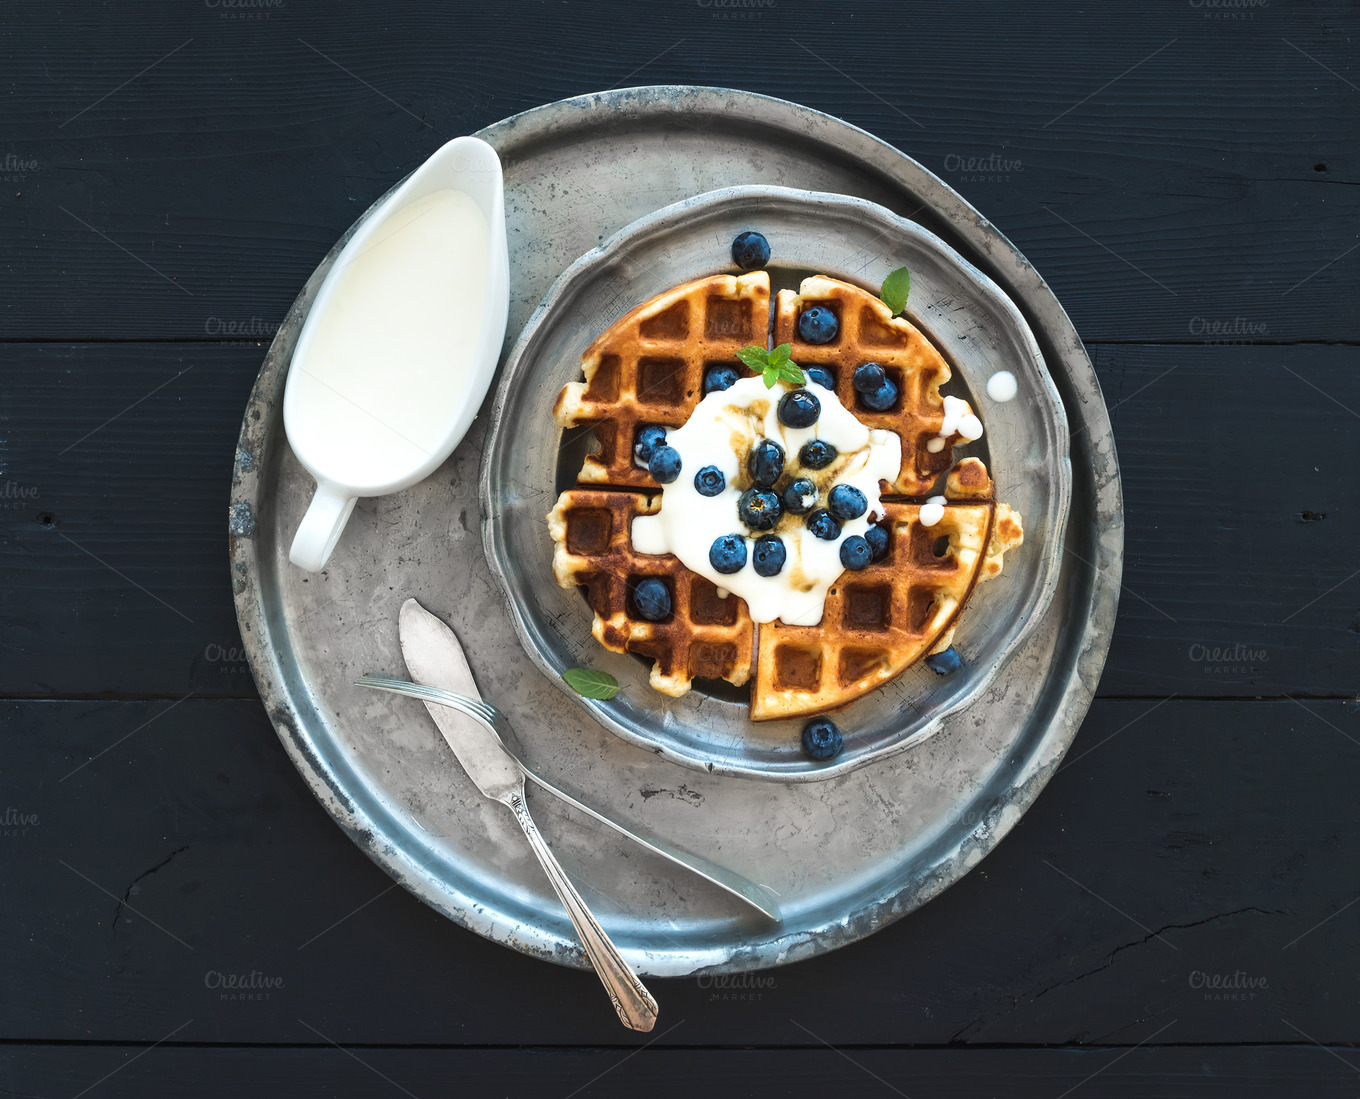 Soft-Belgian-waffles-and-blueberries